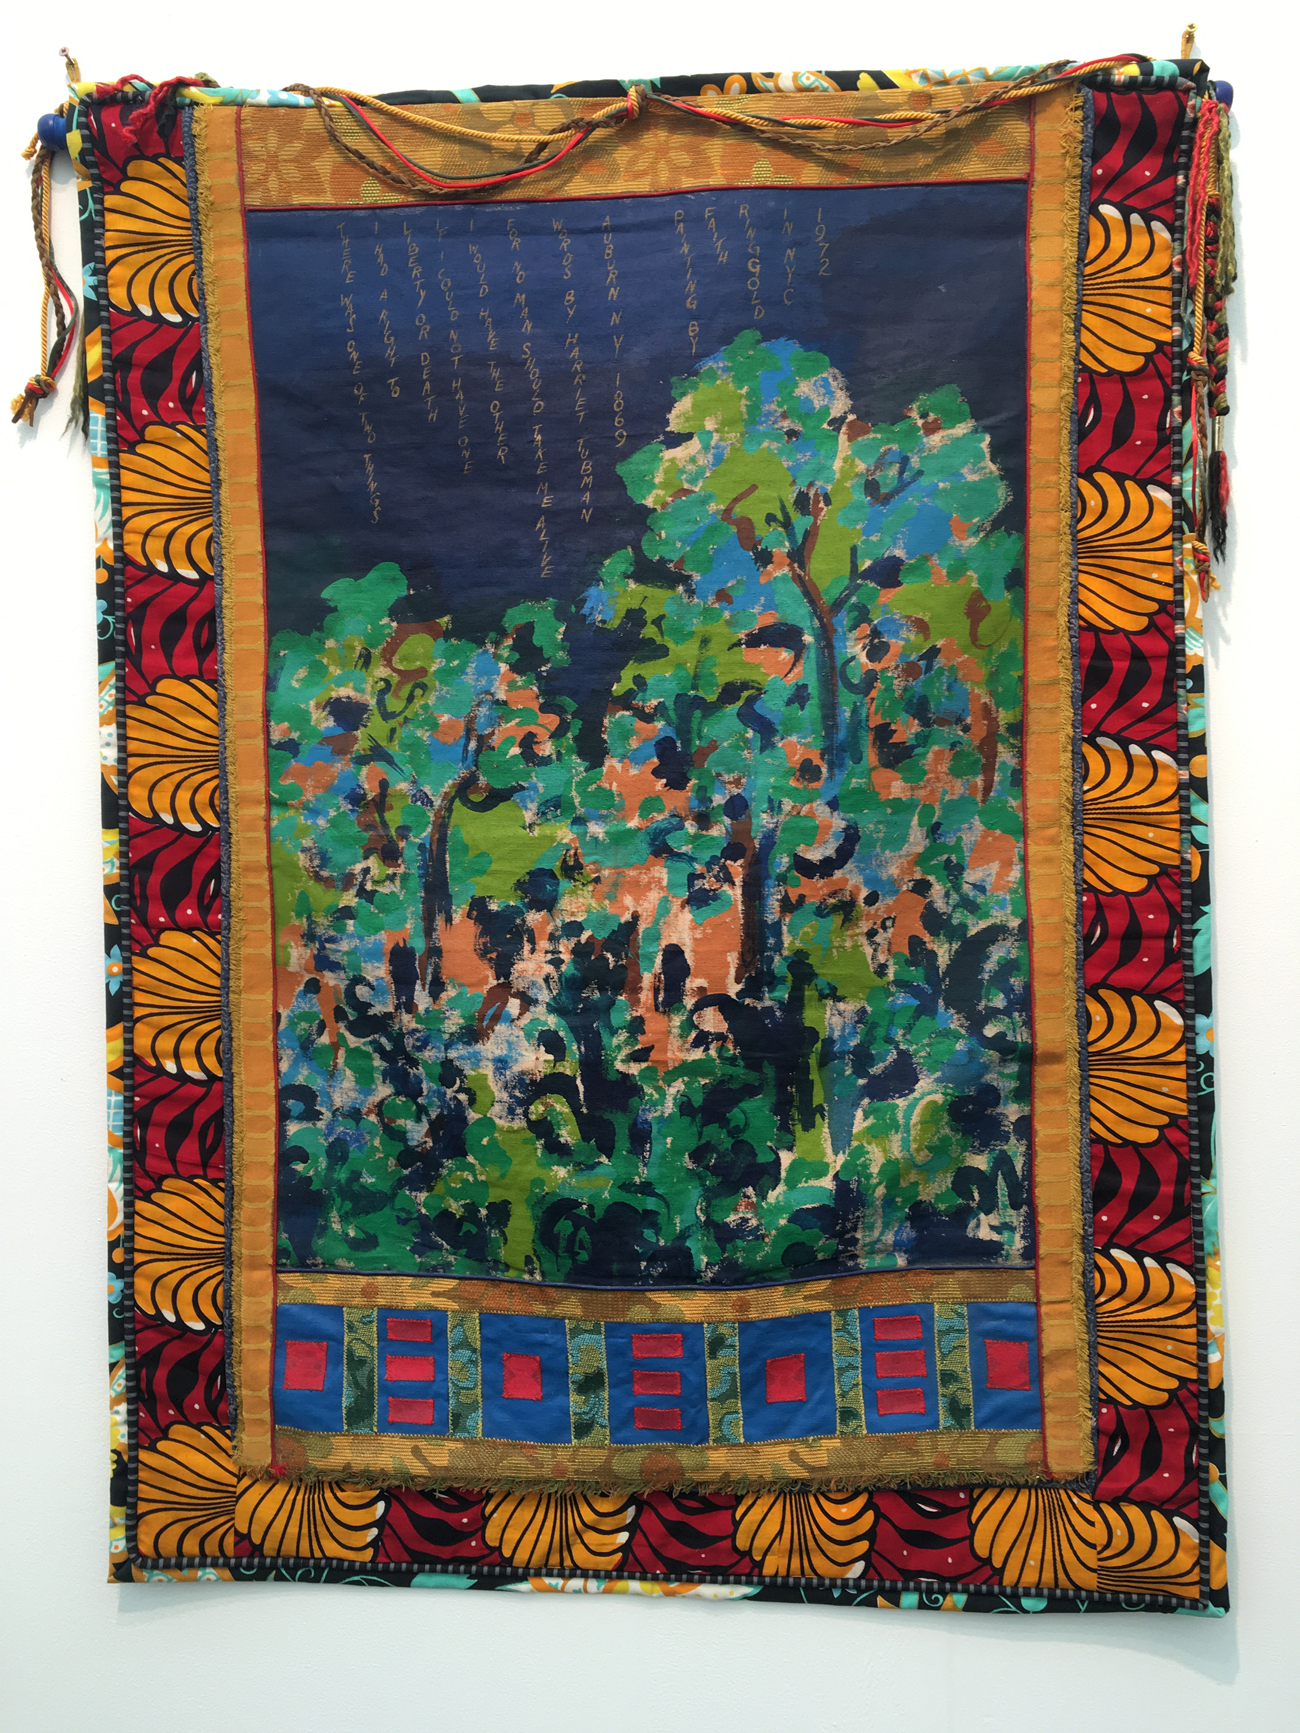 Faith Ringgold, Feminist Series: There Was One of Two Things, 1972, acrylic on canvas framed in cloth, 46 1/2 x 34 inches